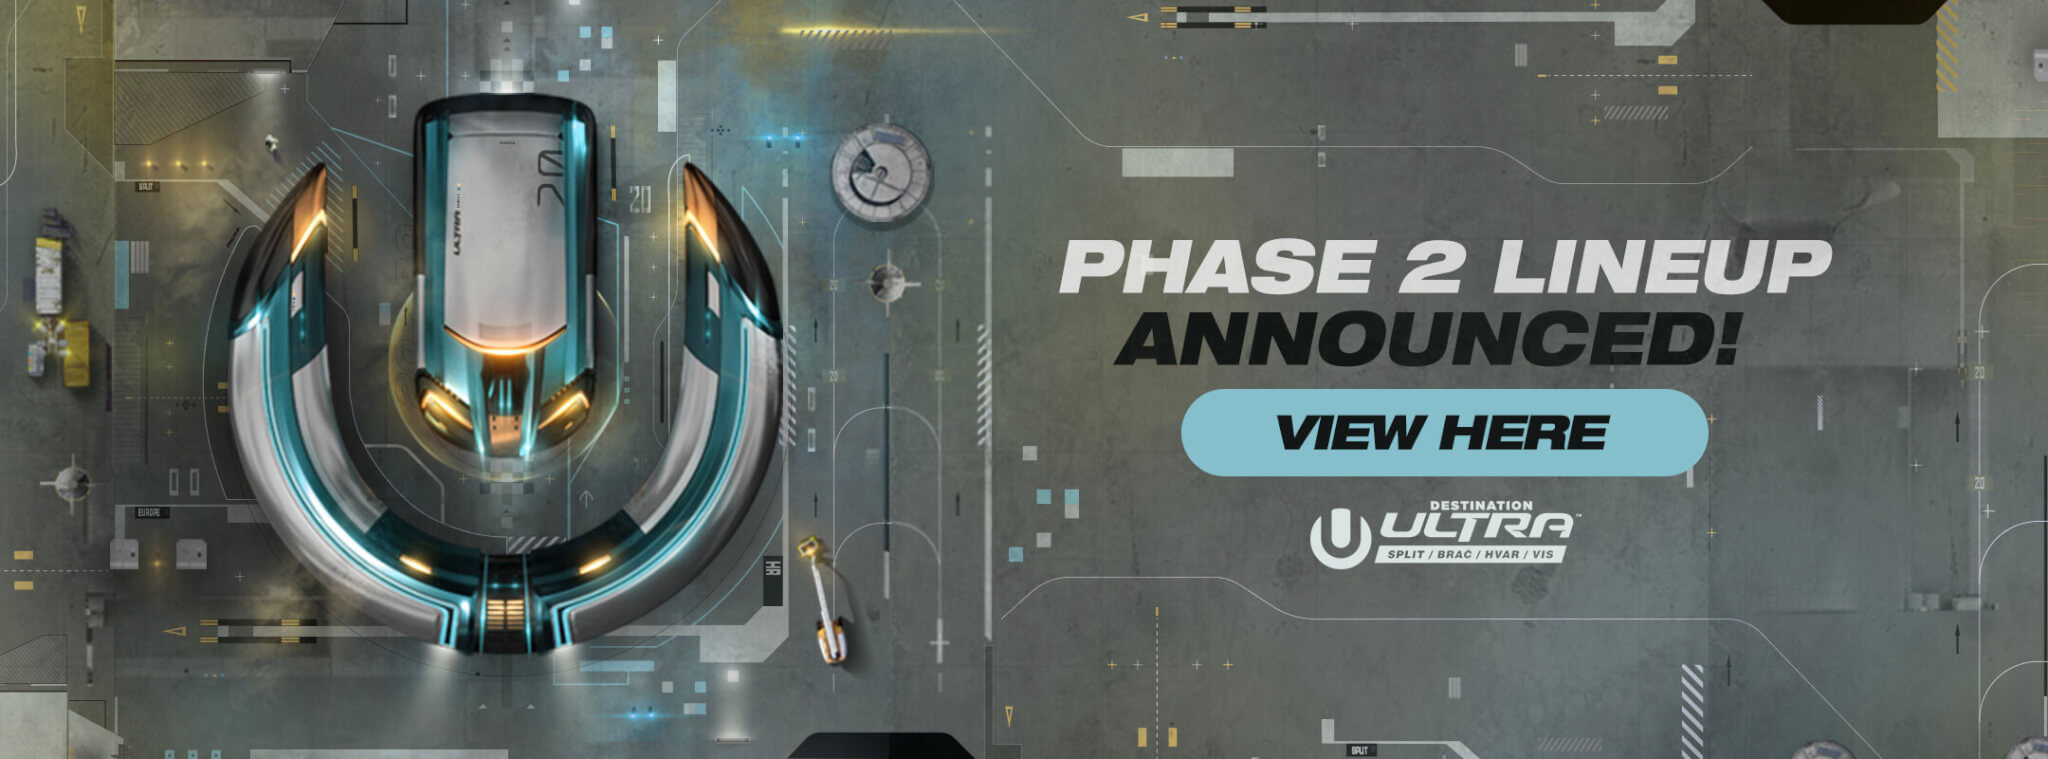 View the Ultra Europe 2020 Phase 2 Lineup